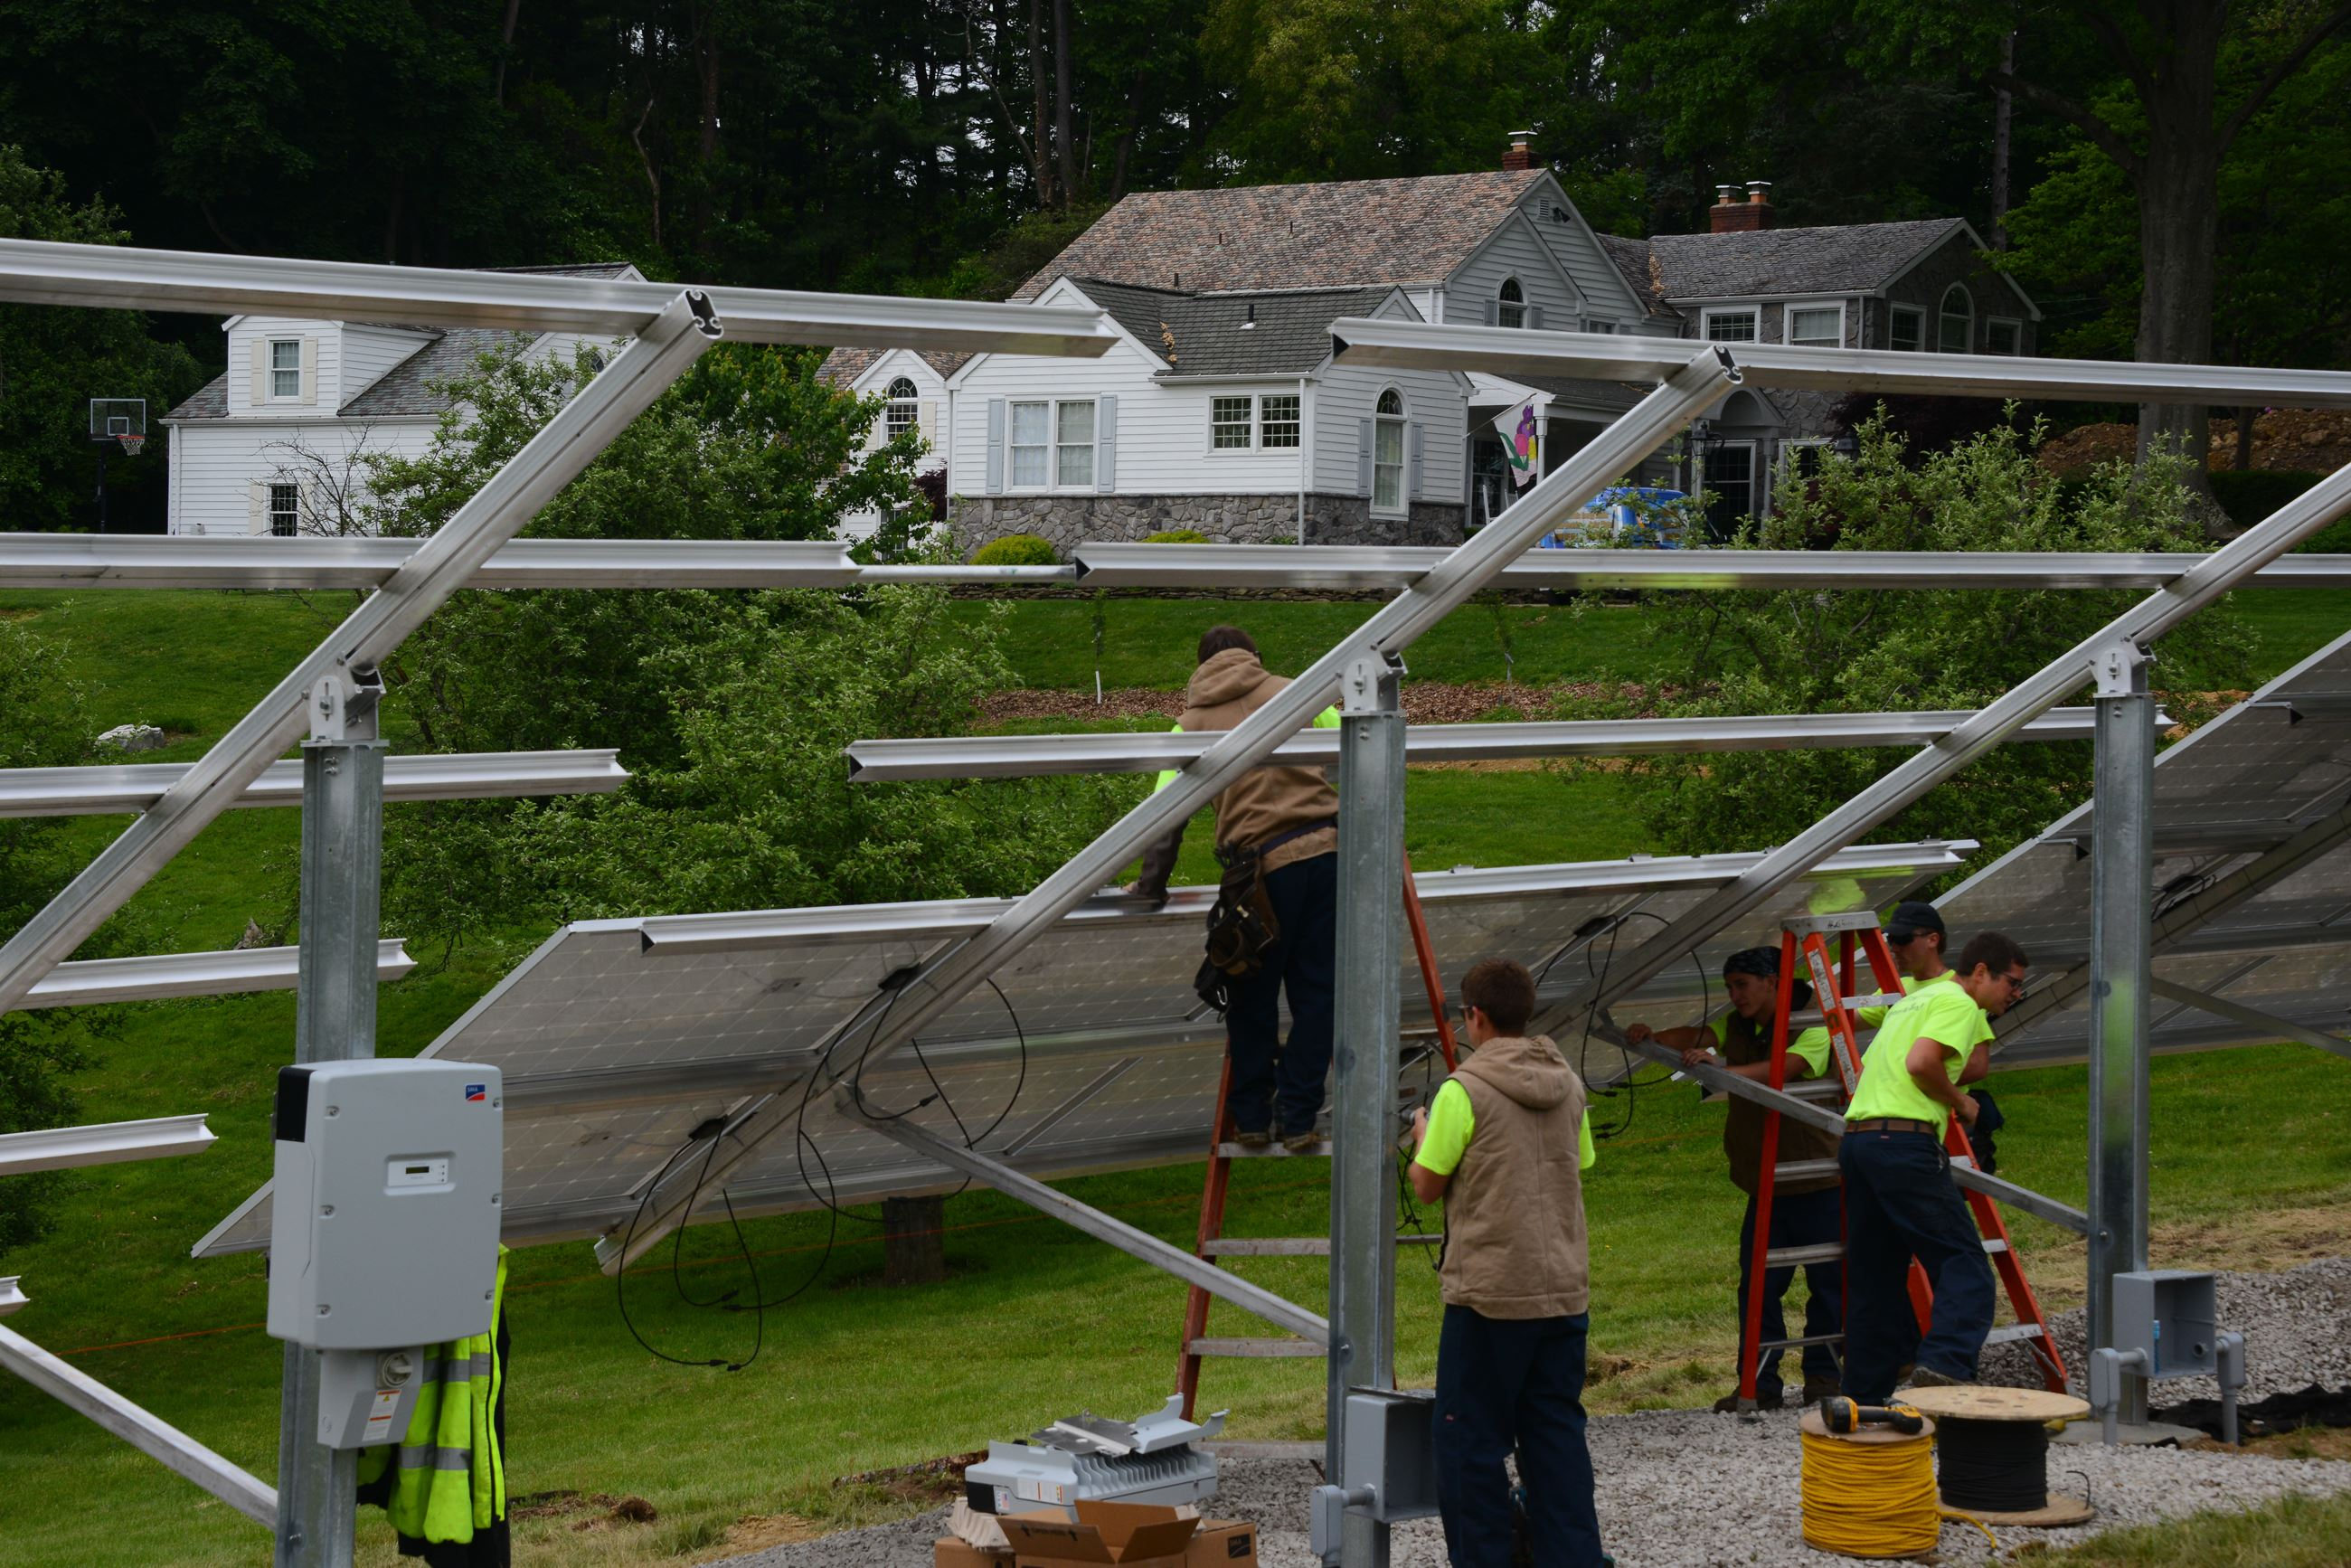 20150521lfSolar01 Workers from Energy Independent Solutions install solar panels on the front yard of the house in Moon on May 21. The installation spanned 125 feet in length and can generate more than 30,000 kilowatt-hours each year.